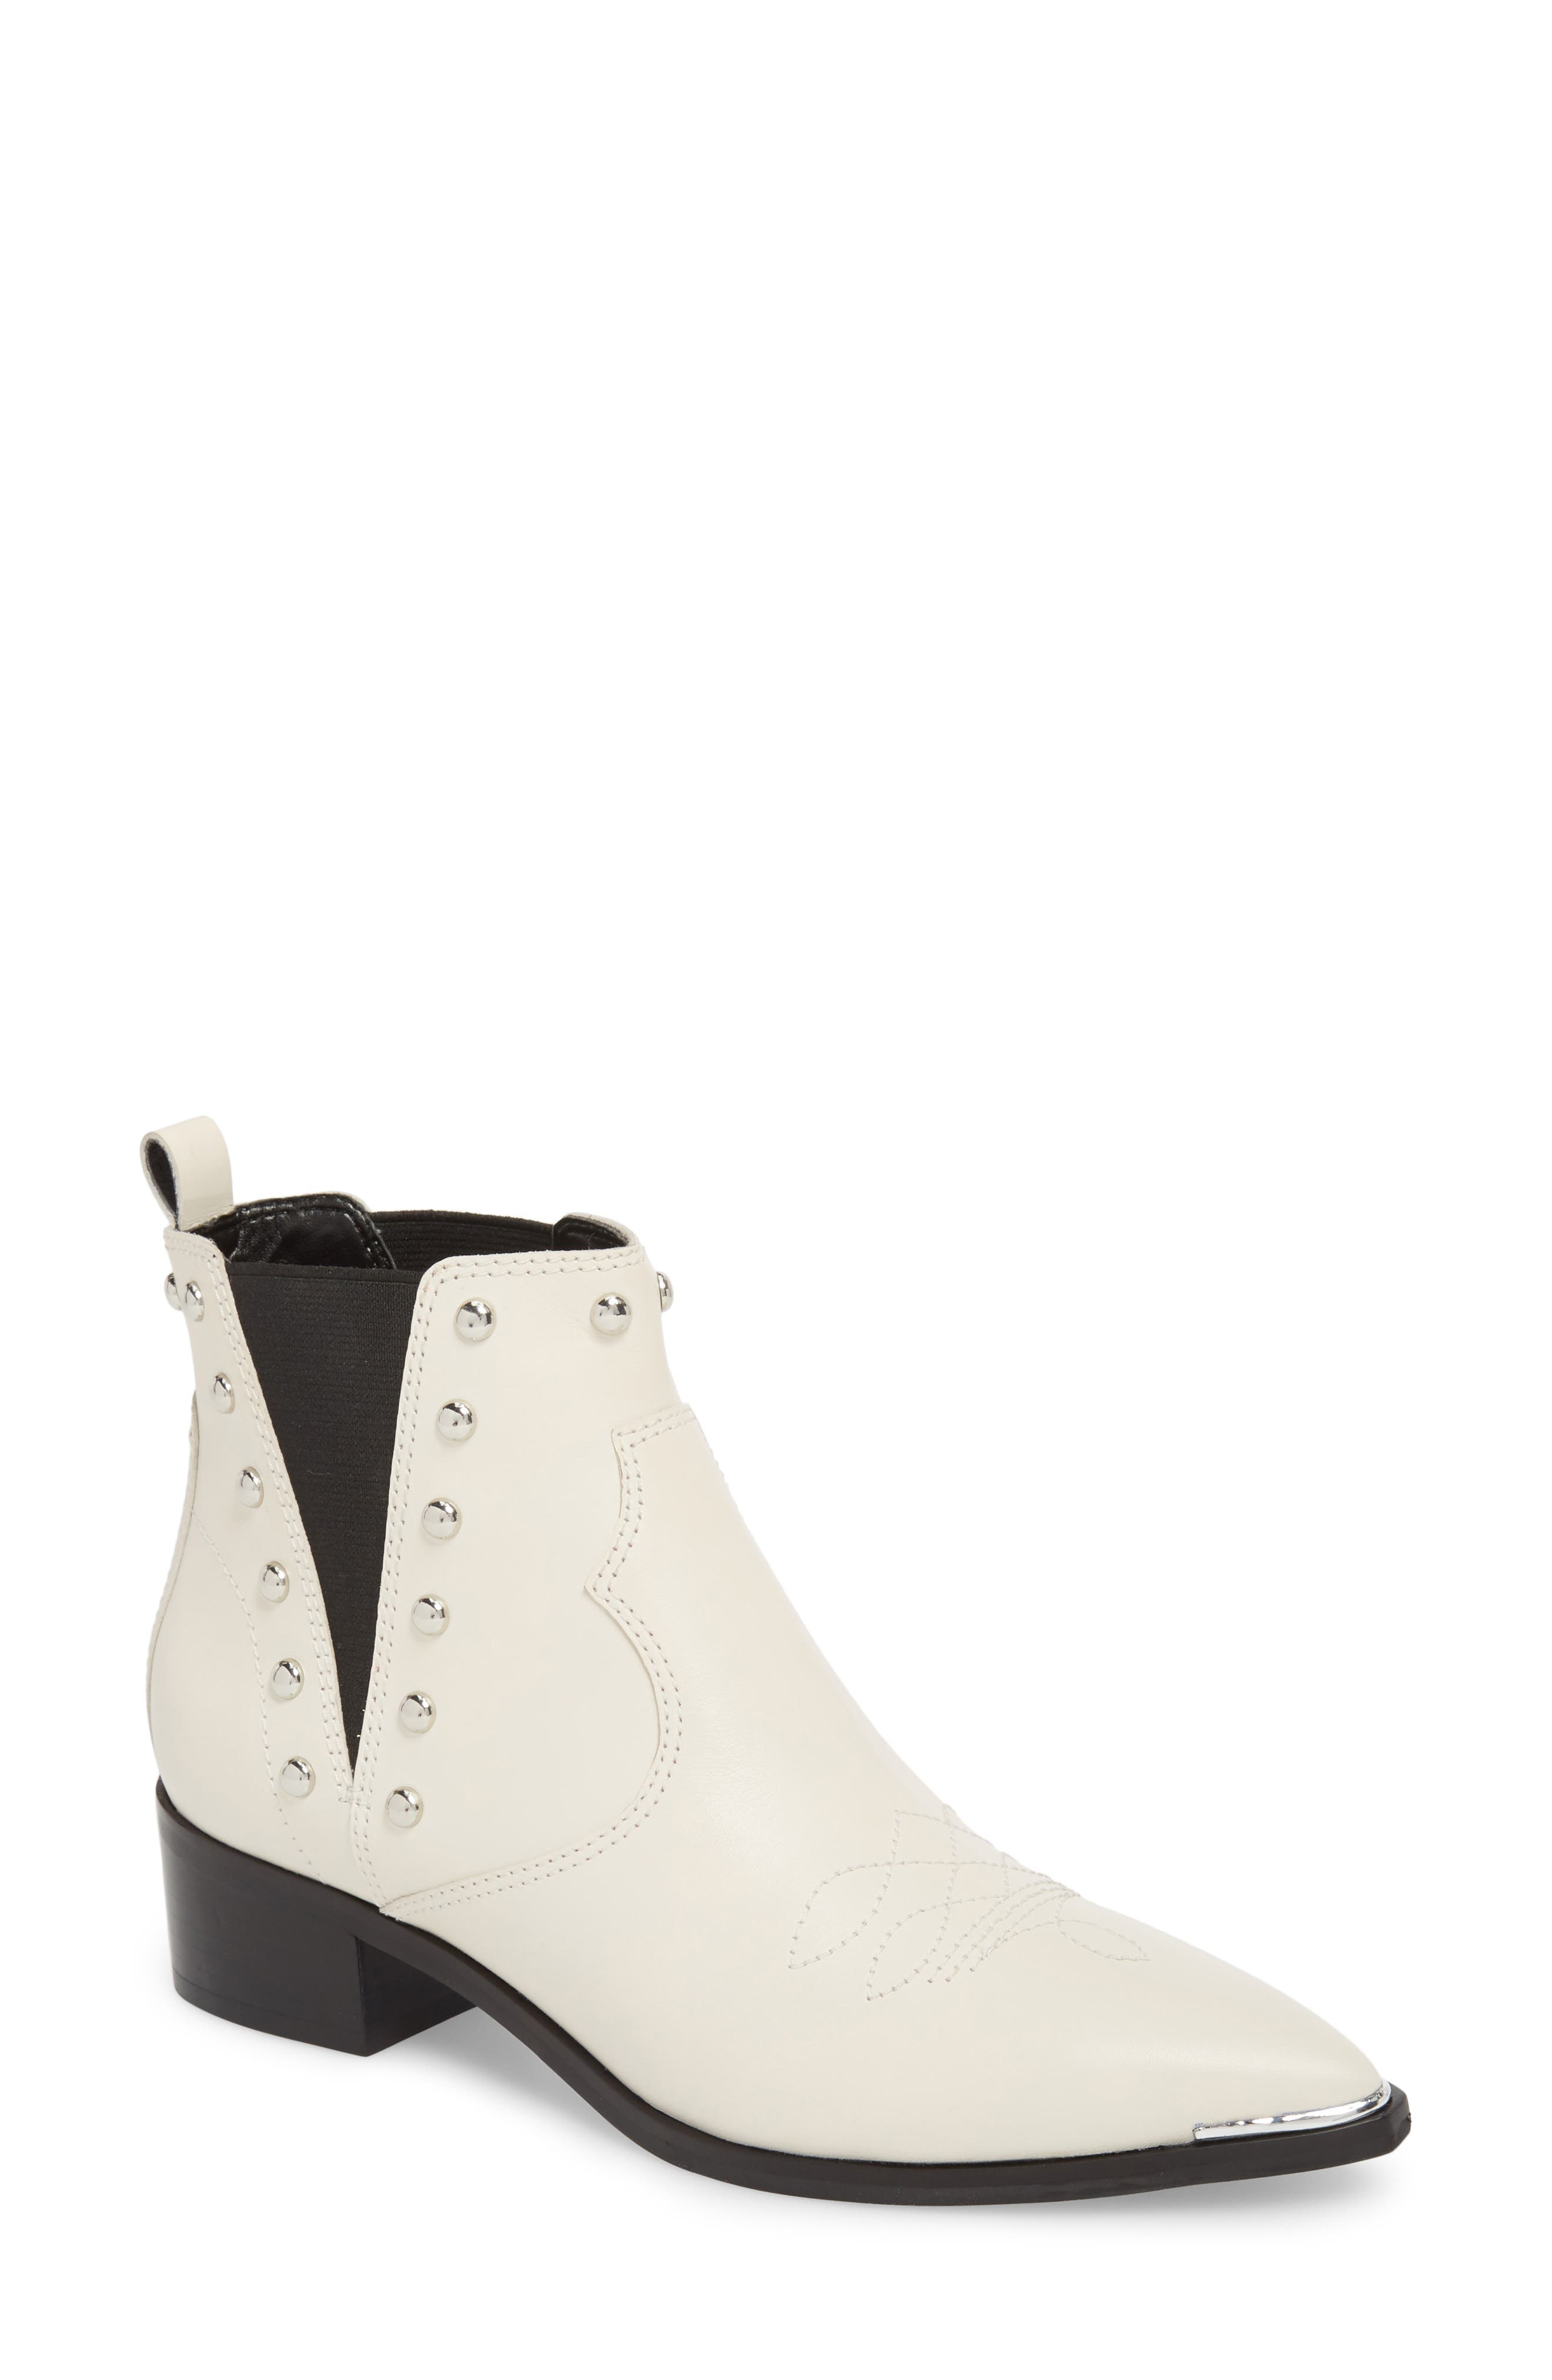 Yente Chelsea Boot,                         Main,                         color, IVORY LEATHER